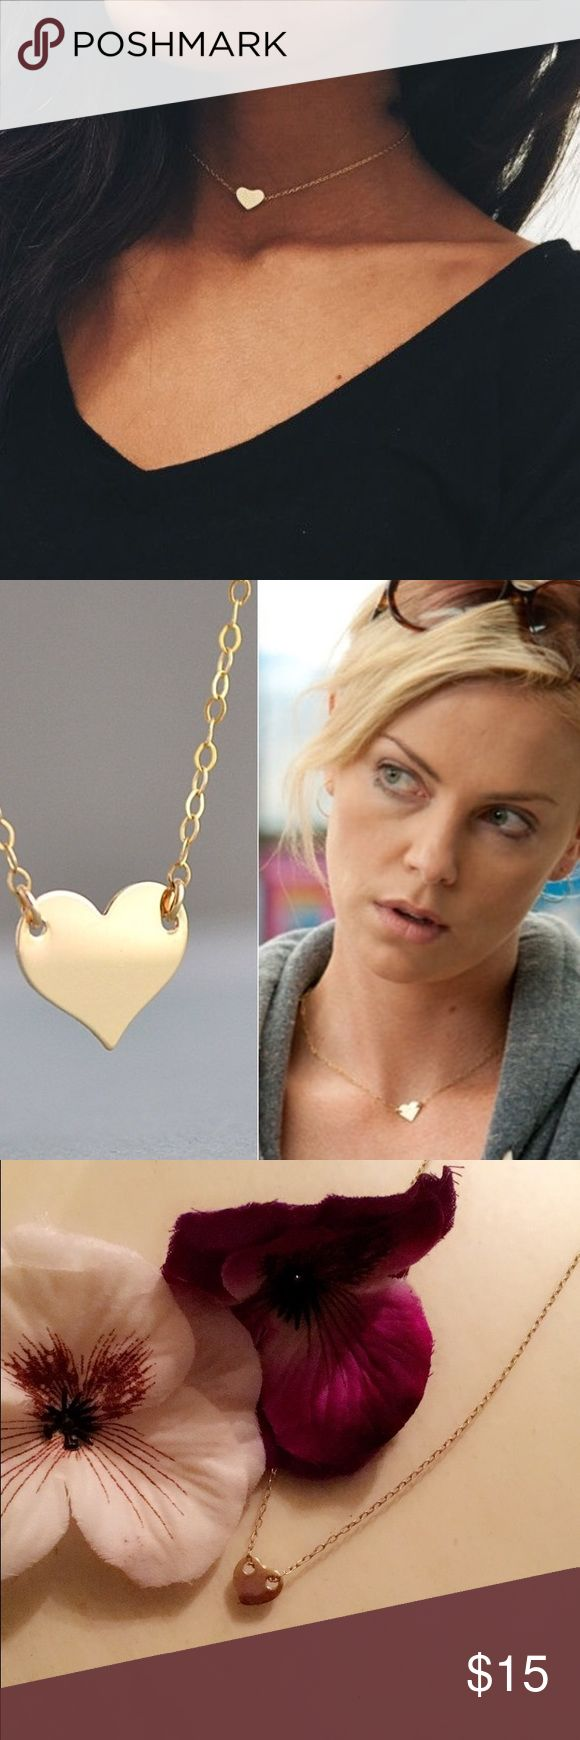 Heart choker necklace. Gold heart choker necklace. Jewelry Necklaces